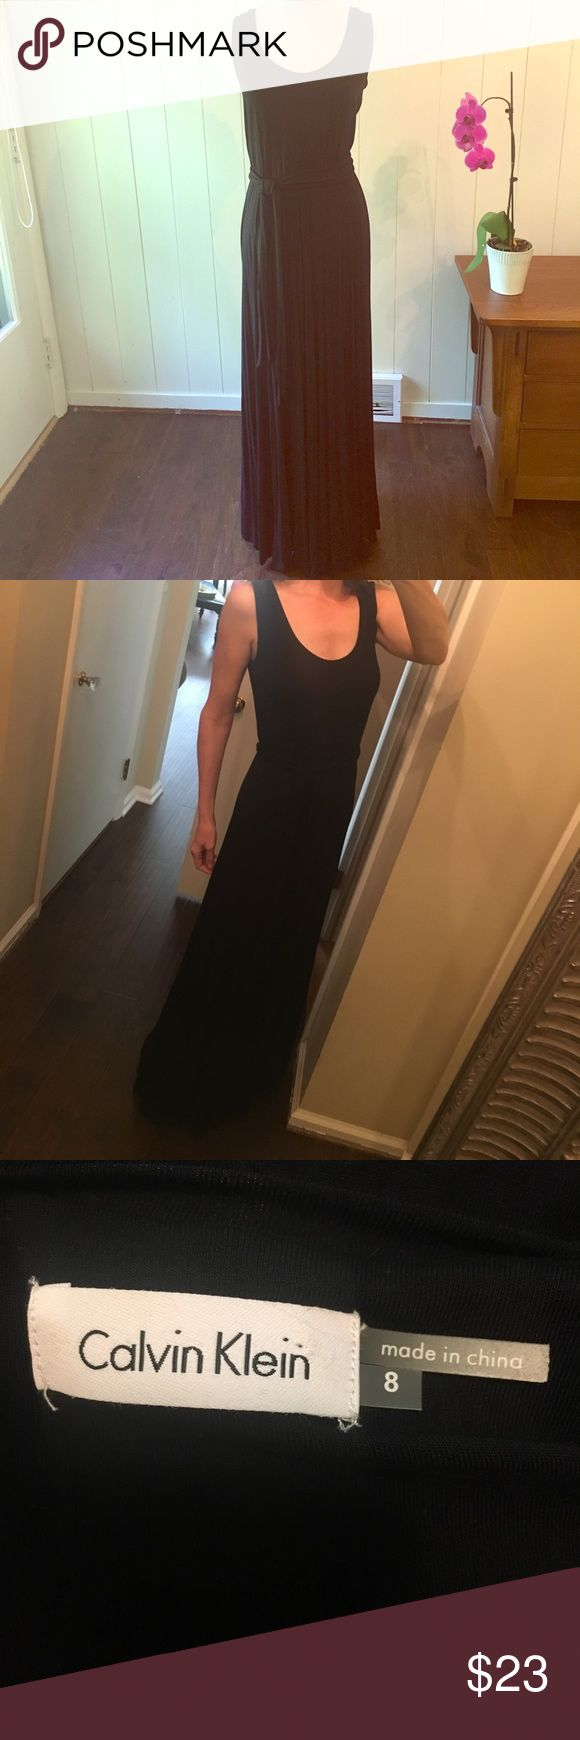 "Calvin Klein Black Maxi Dress size 8 Long... I mean long! This is dramatic and cool and chic. Just a pair of gold hoops, some pretty flat sandals and sunglasses and you can hit the boat! 😎Or poolside party! Plain tank style, front and back. ♦️19"" across bust. Too difficult to measure length, but I'm 5'10"" and it hits the floor on me. Long tie dash. Worn only a couple times, so very gently used. Calvin Klein Dresses Maxi"